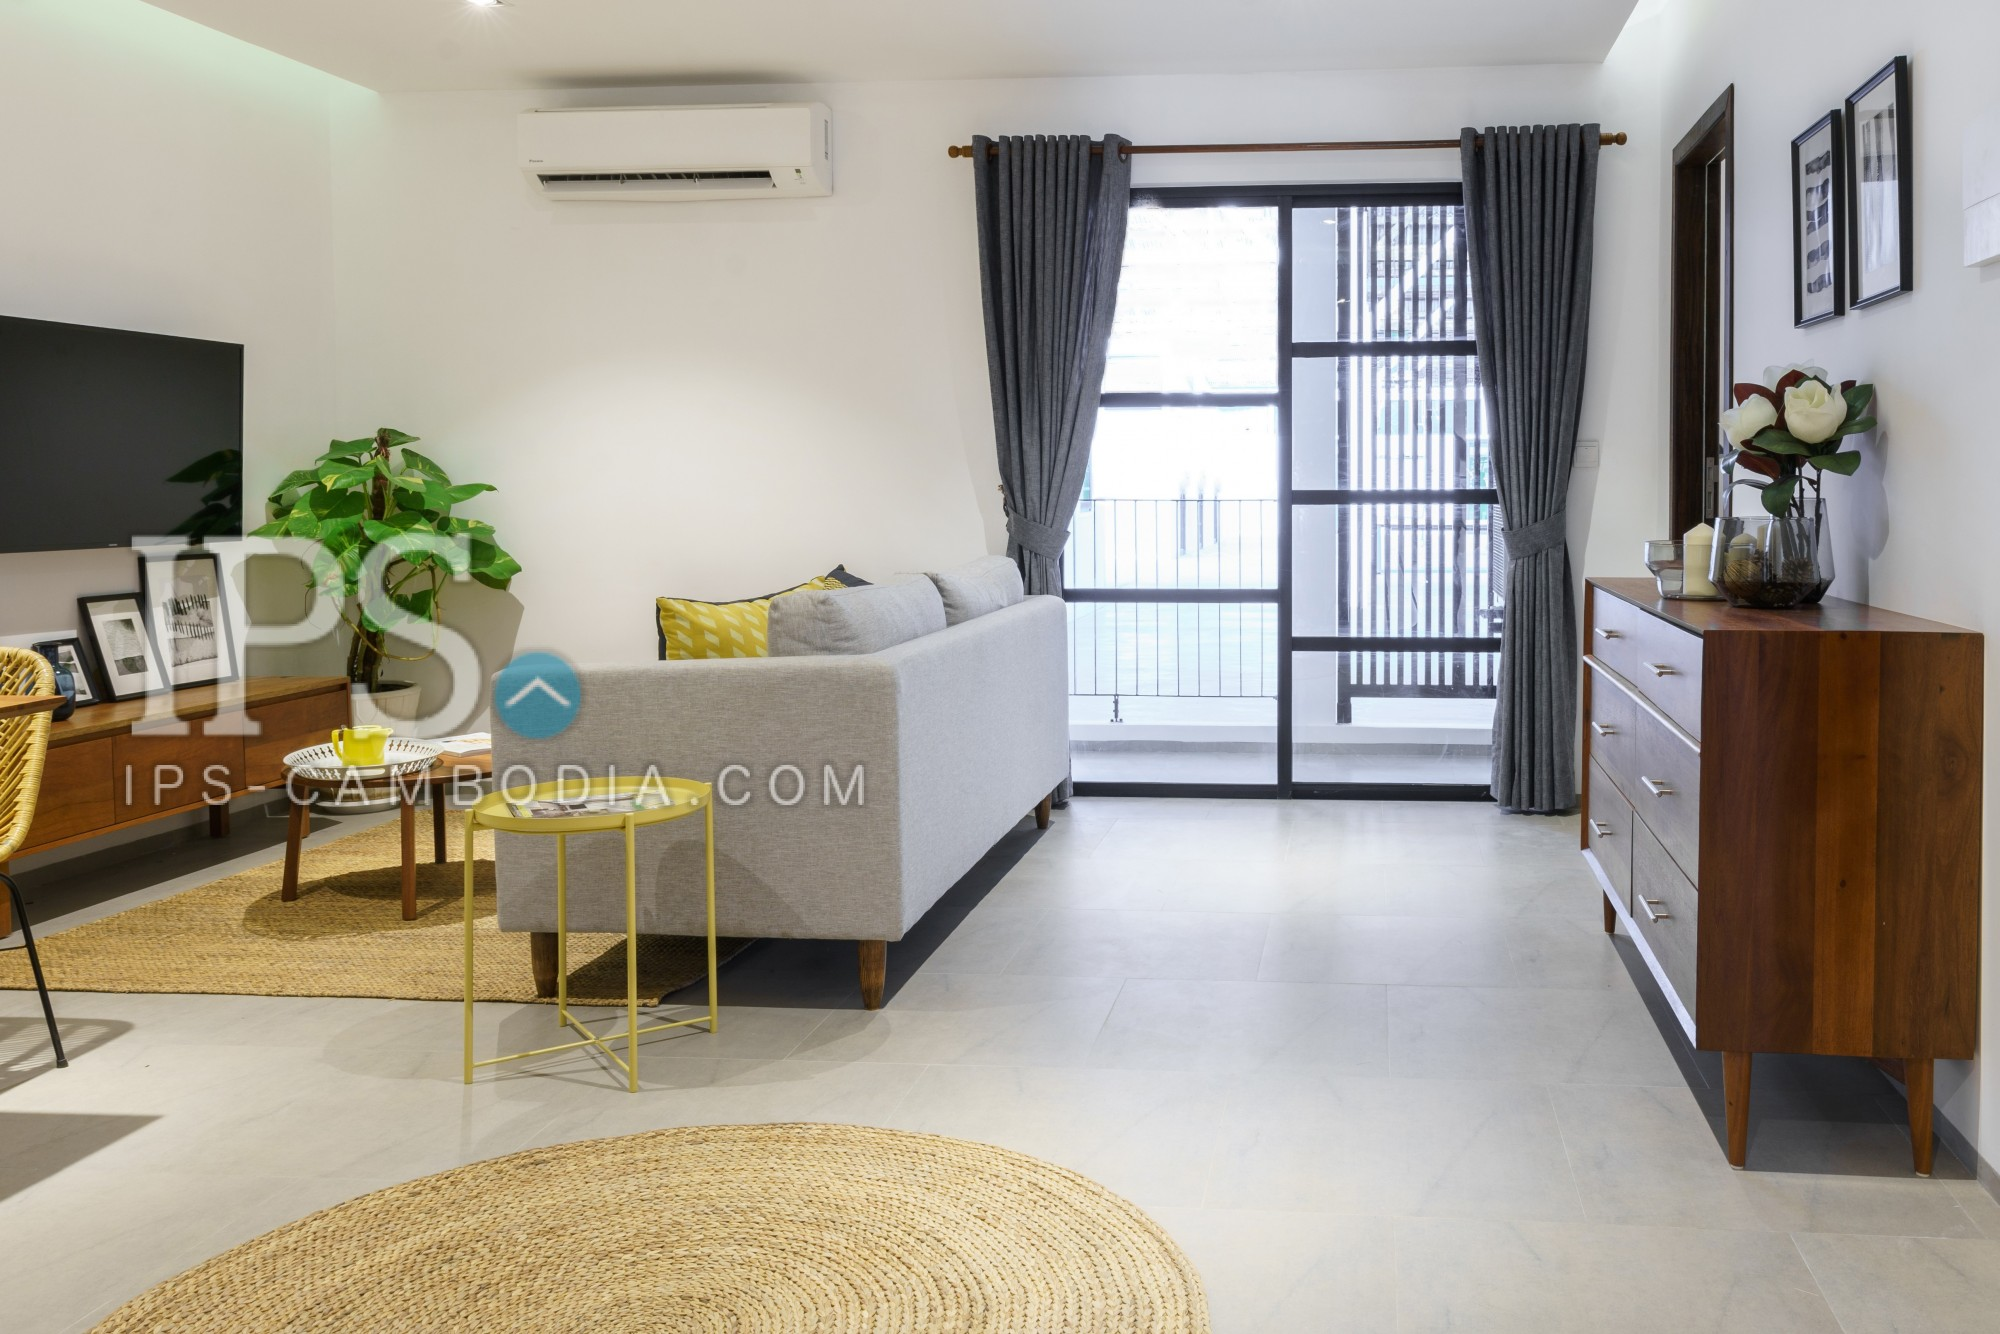 Condominium Unit For Sale - Urban Village, Hun Sen Blvd